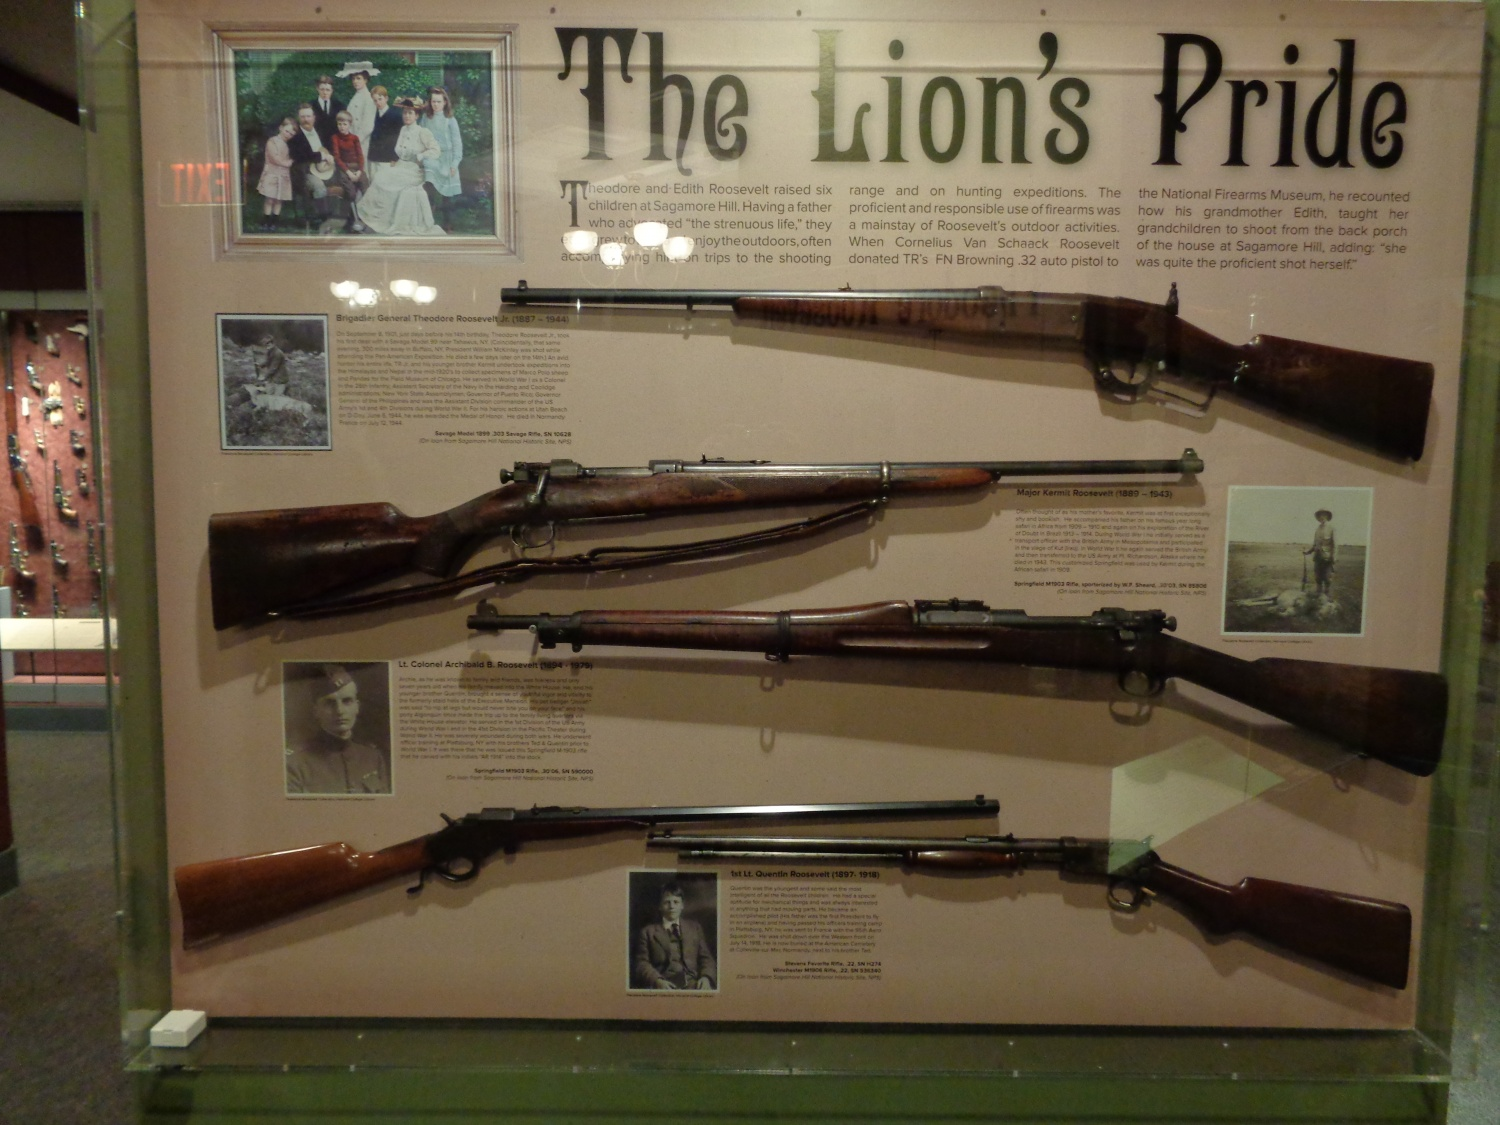 Teddy roosevelt guns to be displayed at nra national -